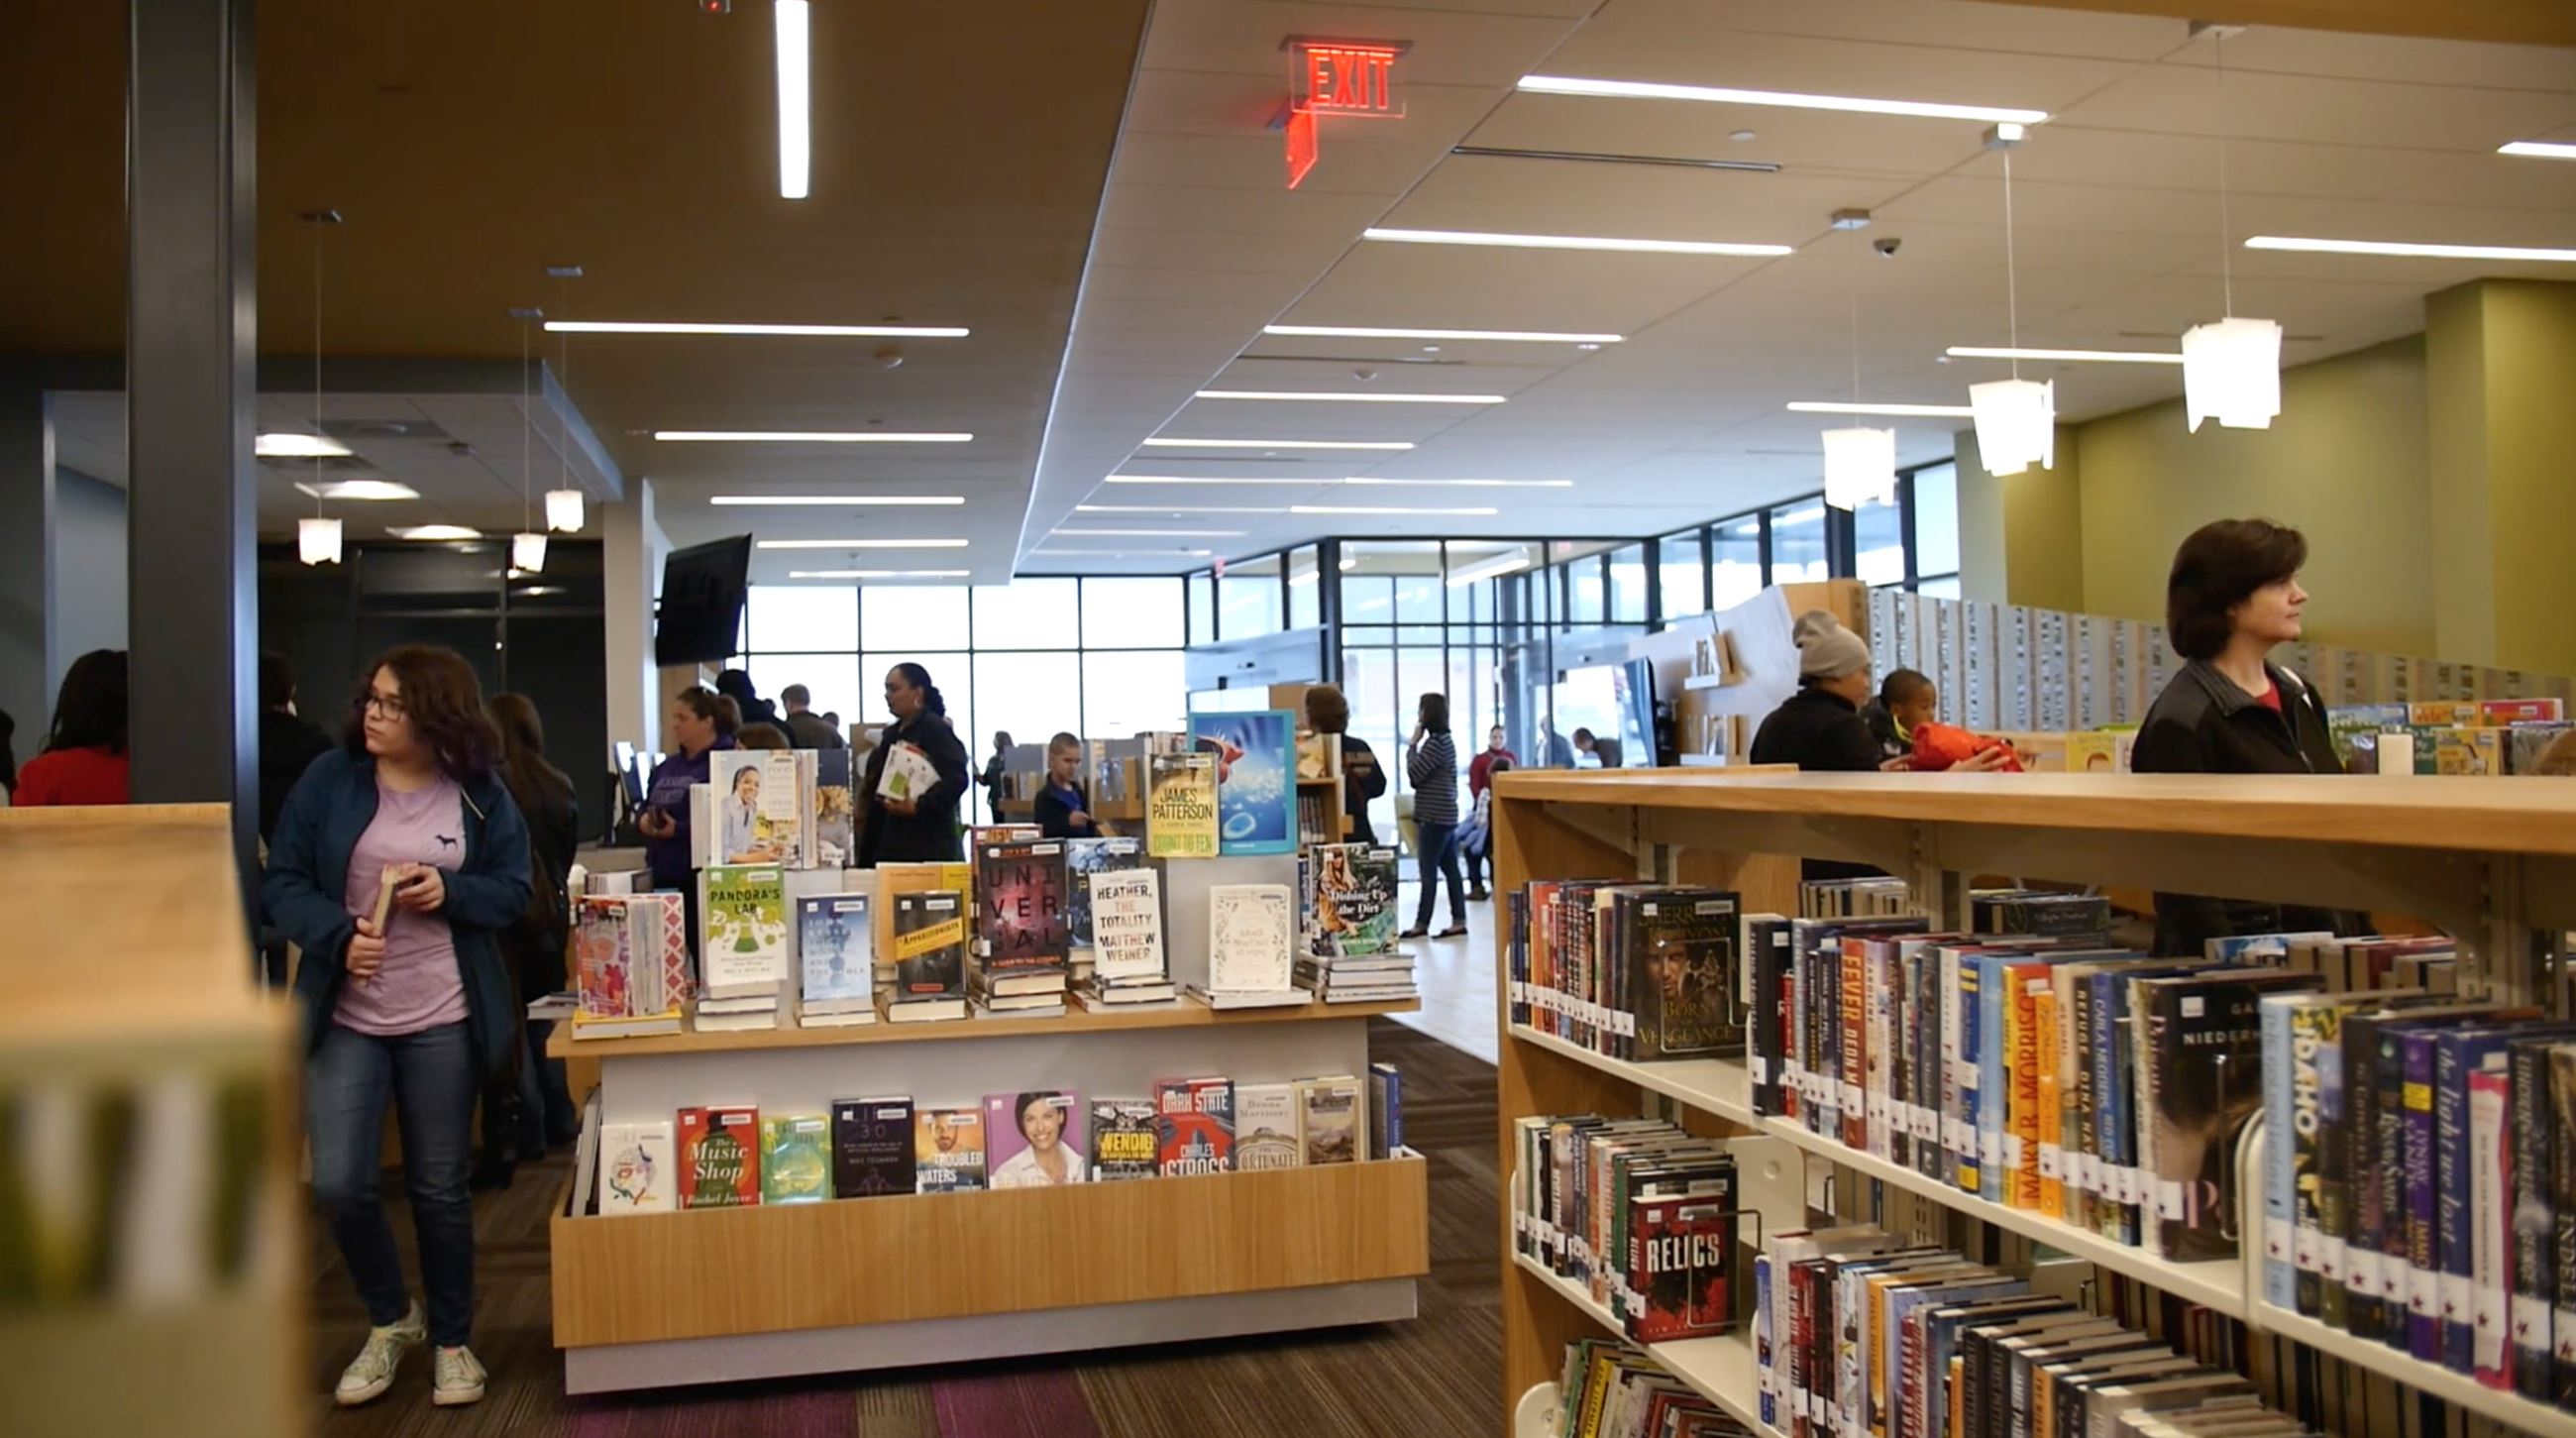 New Library Images_17